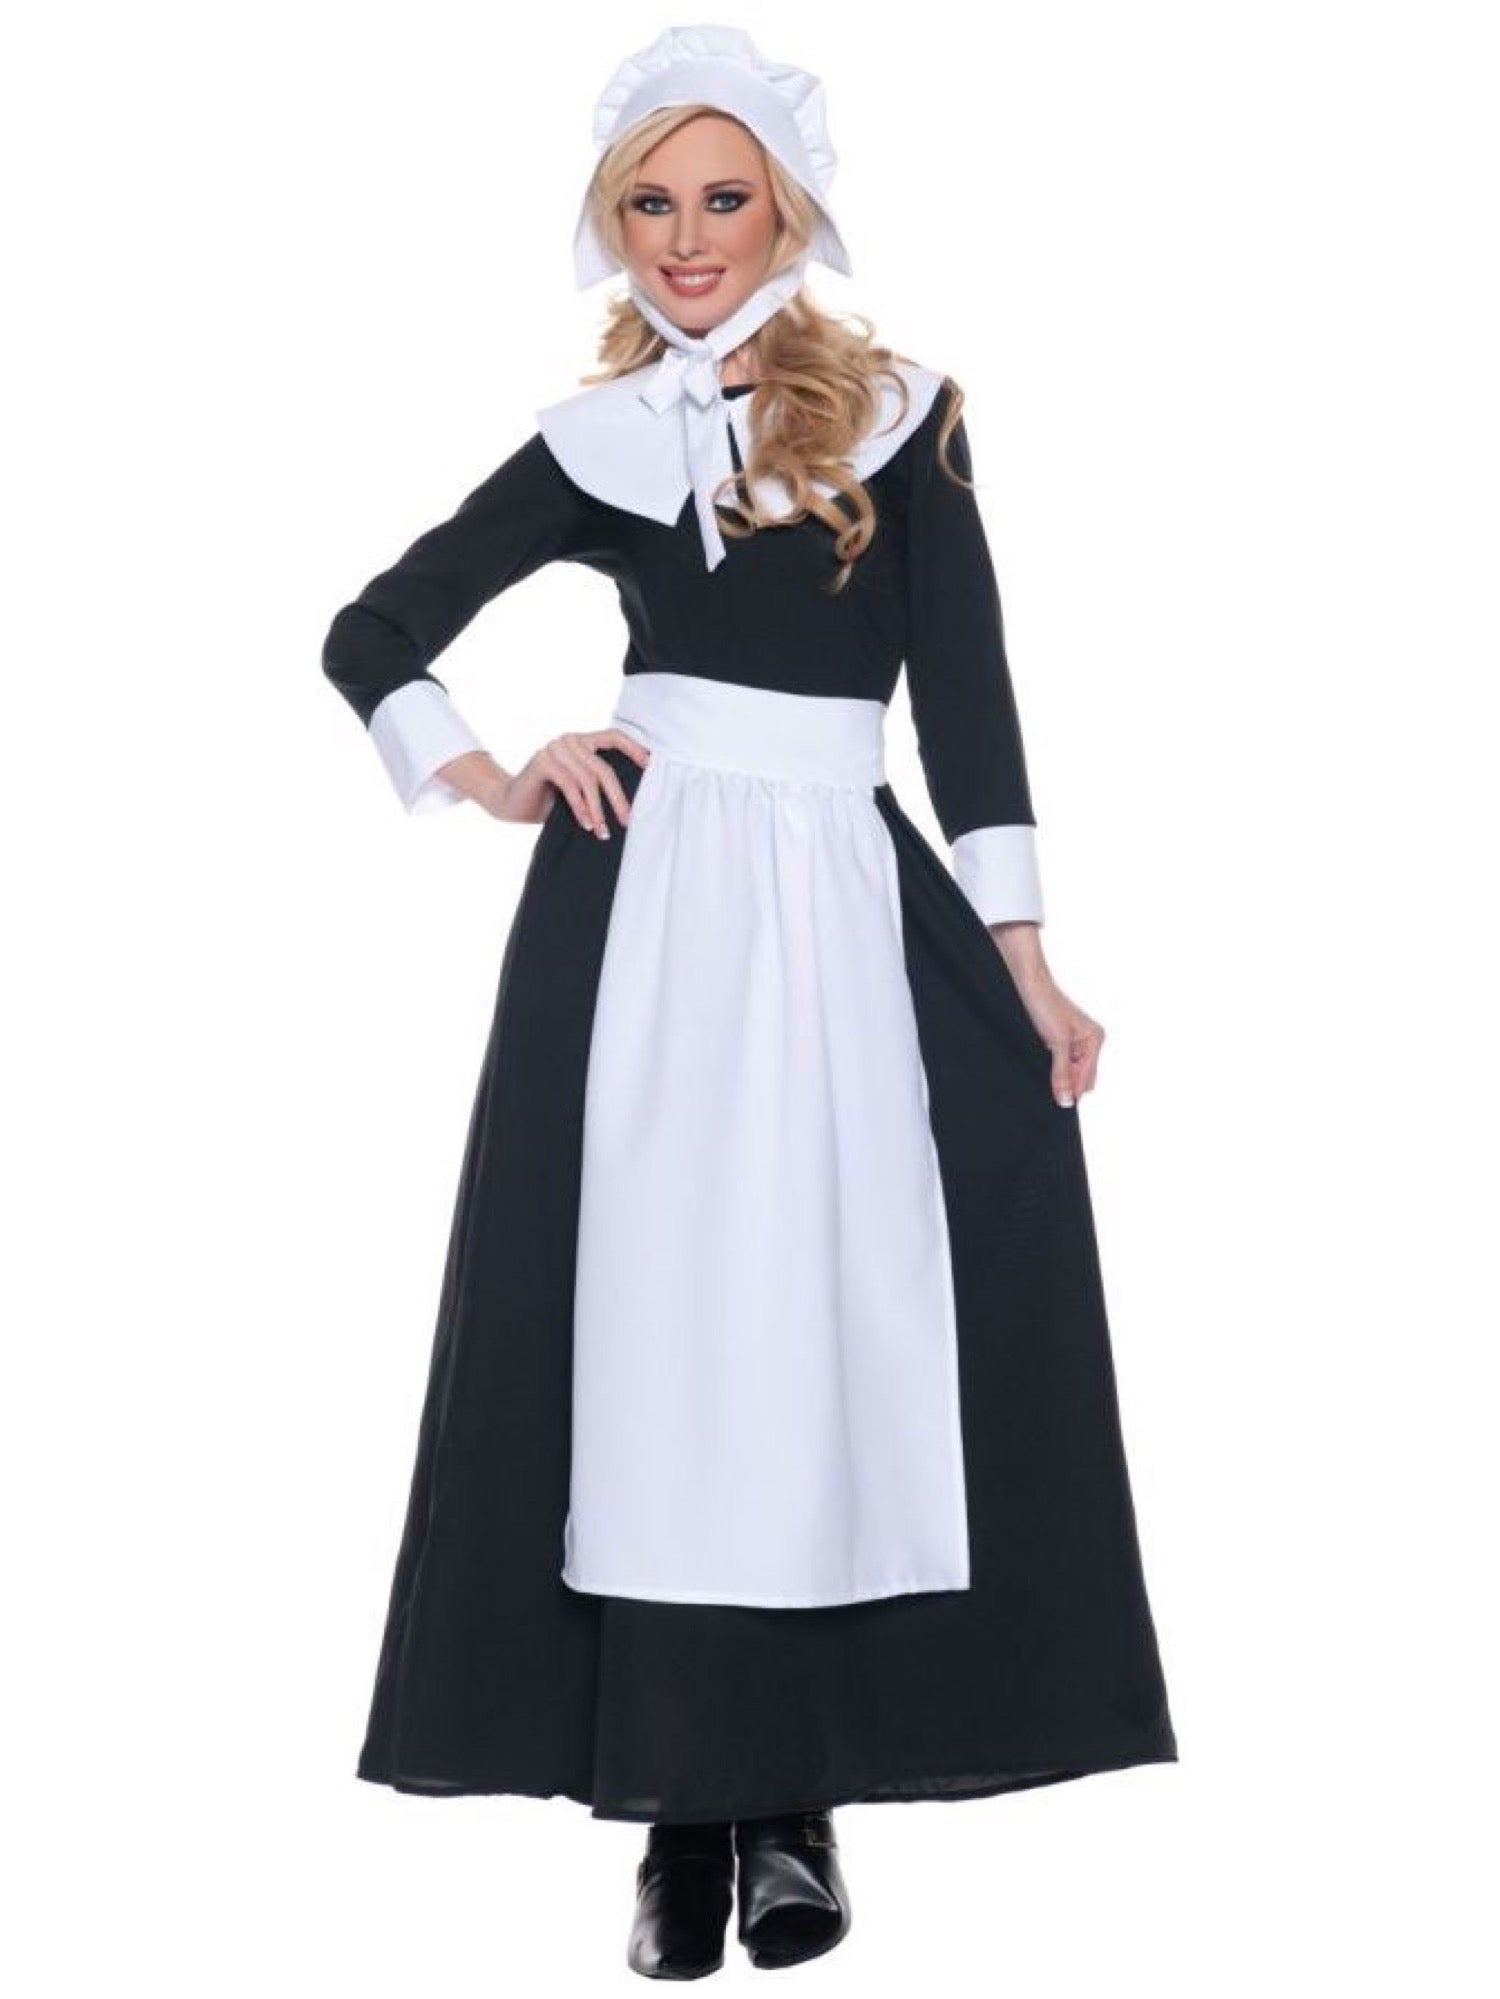 Hobbypos Pilgrim Colonial Victoria Thanksgiving Olden Day Historical Adult Womens Costume